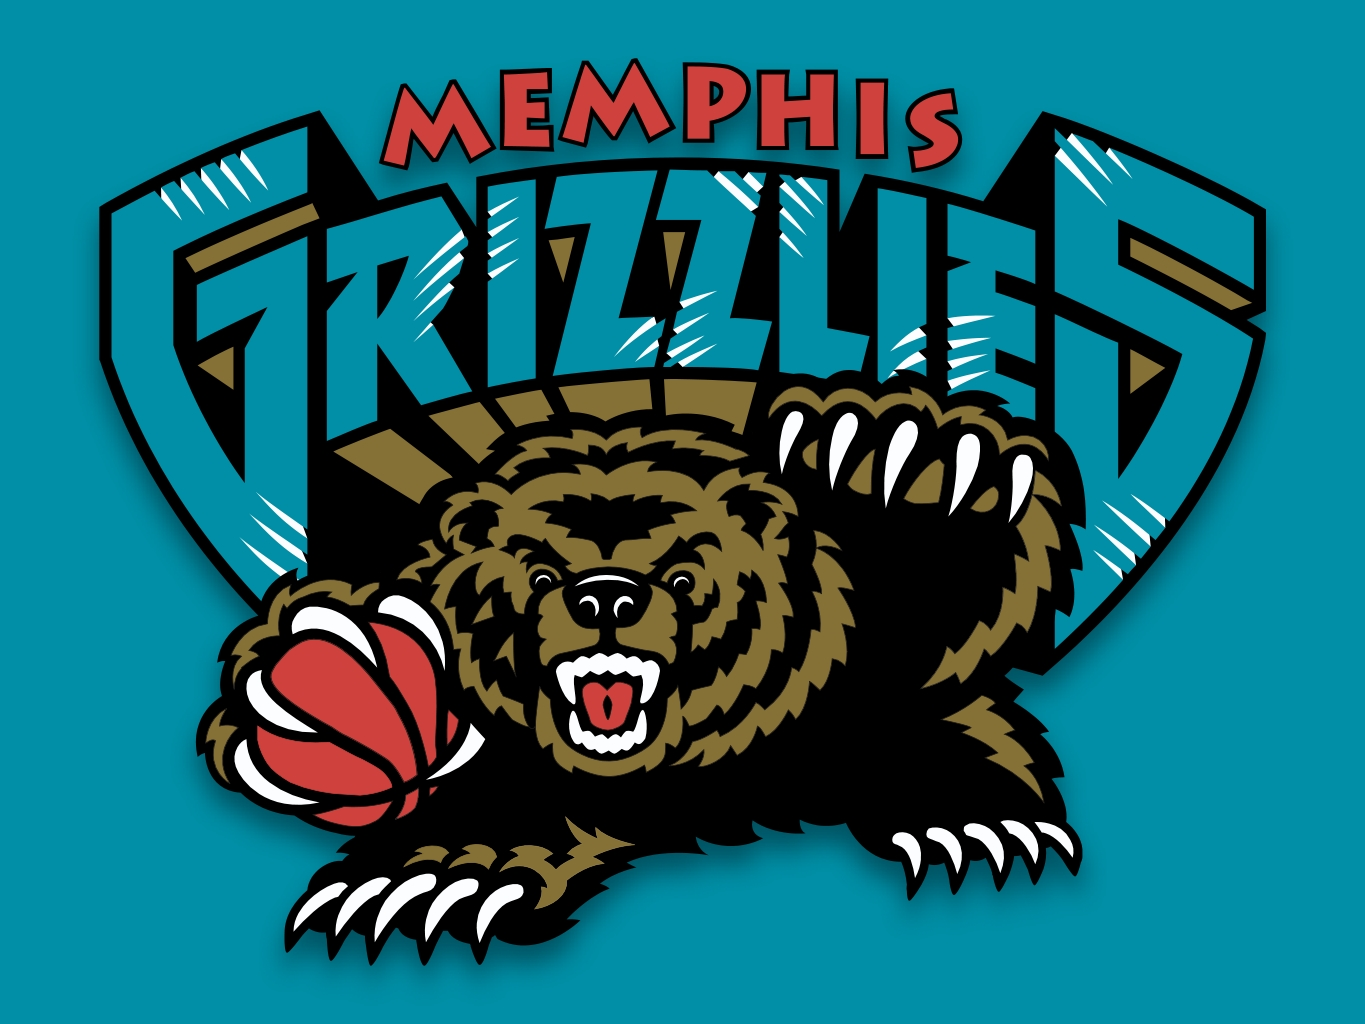 Miami Heat play Memphis Grizzlies at AmericanAirlies Arena - Sun Sentinel